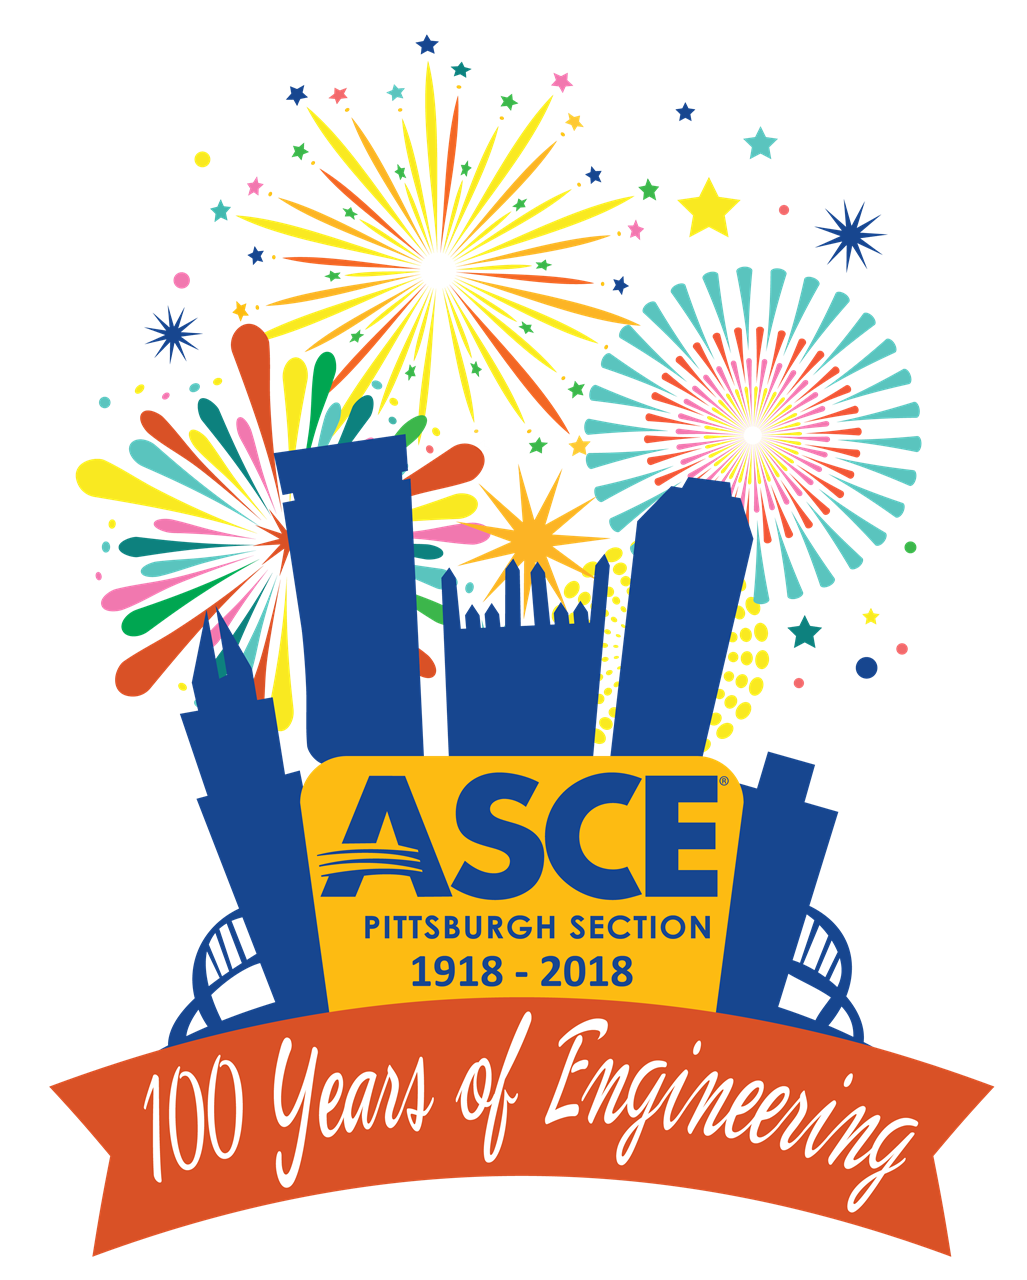 100th of clipart anniversary. Asce pittsburgh section th